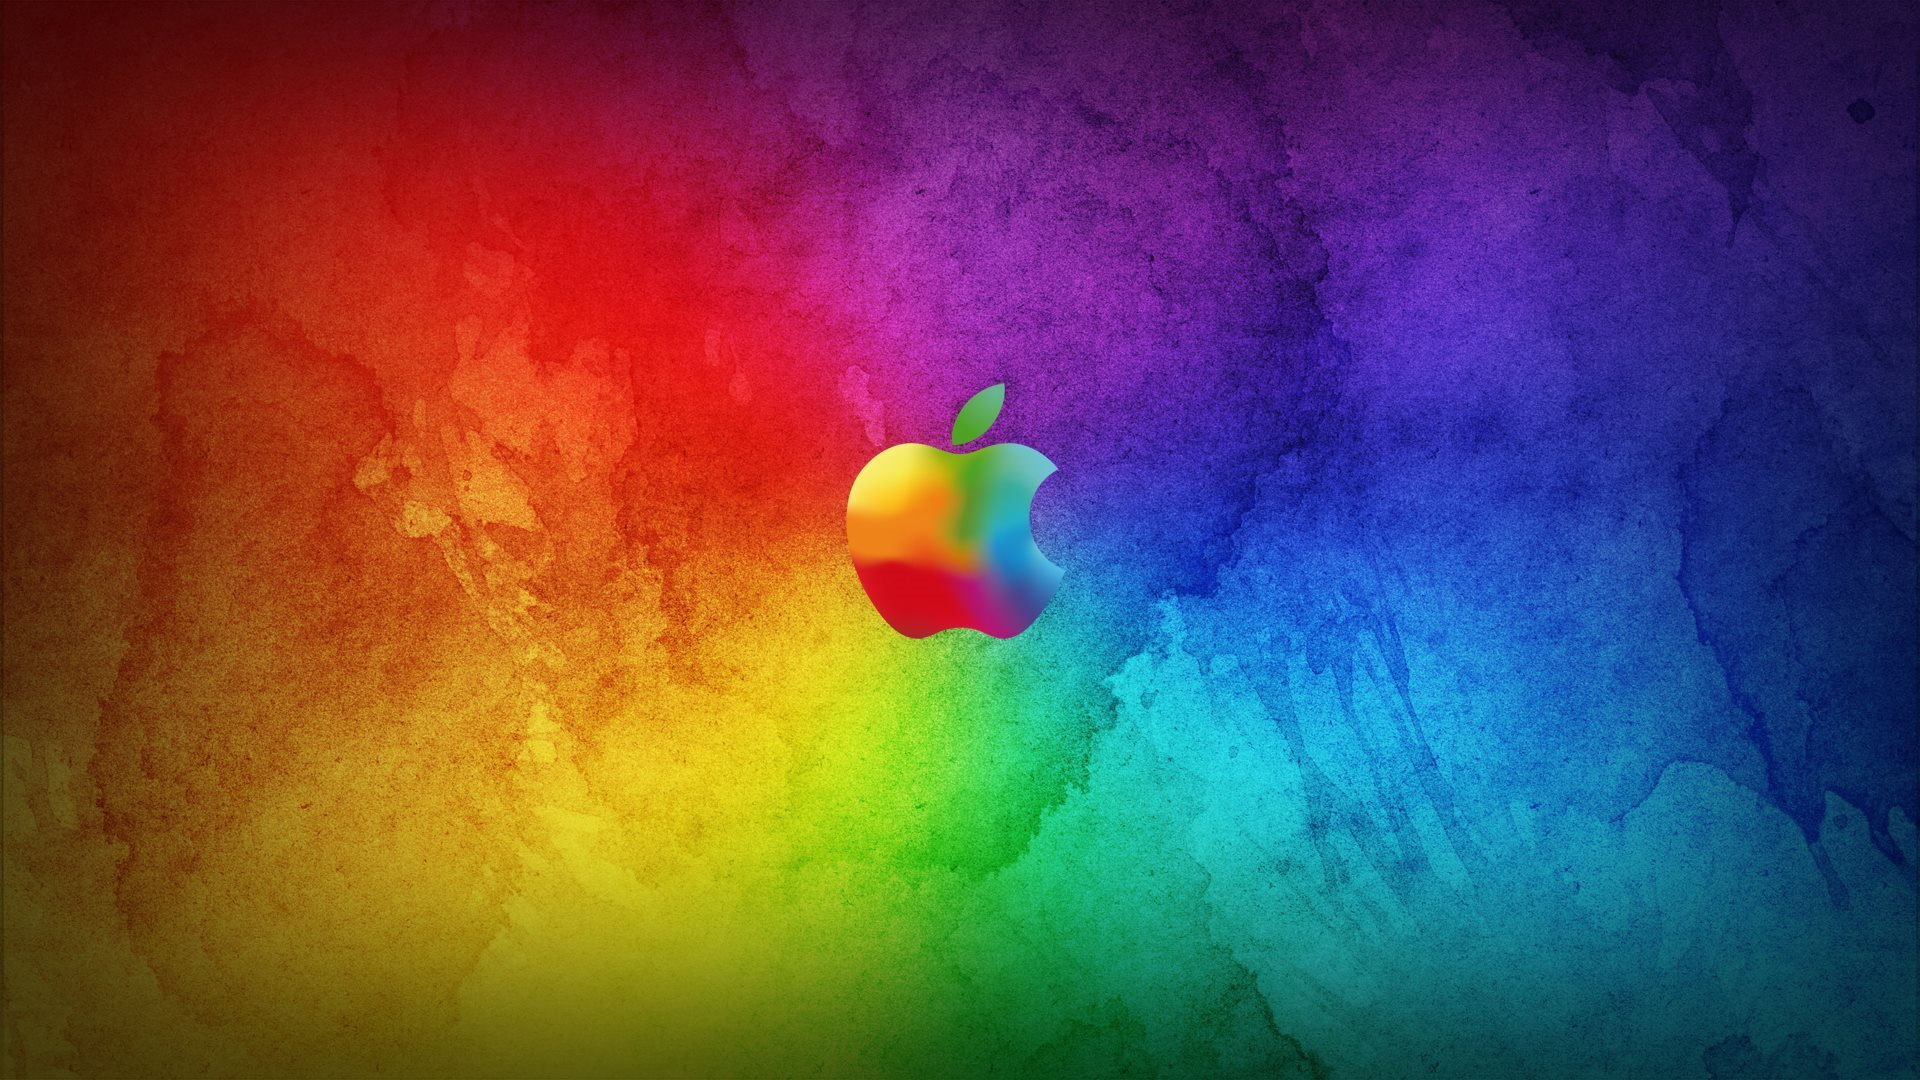 Apple-Logo-Desktop-HD-wallpaper-wp6002058